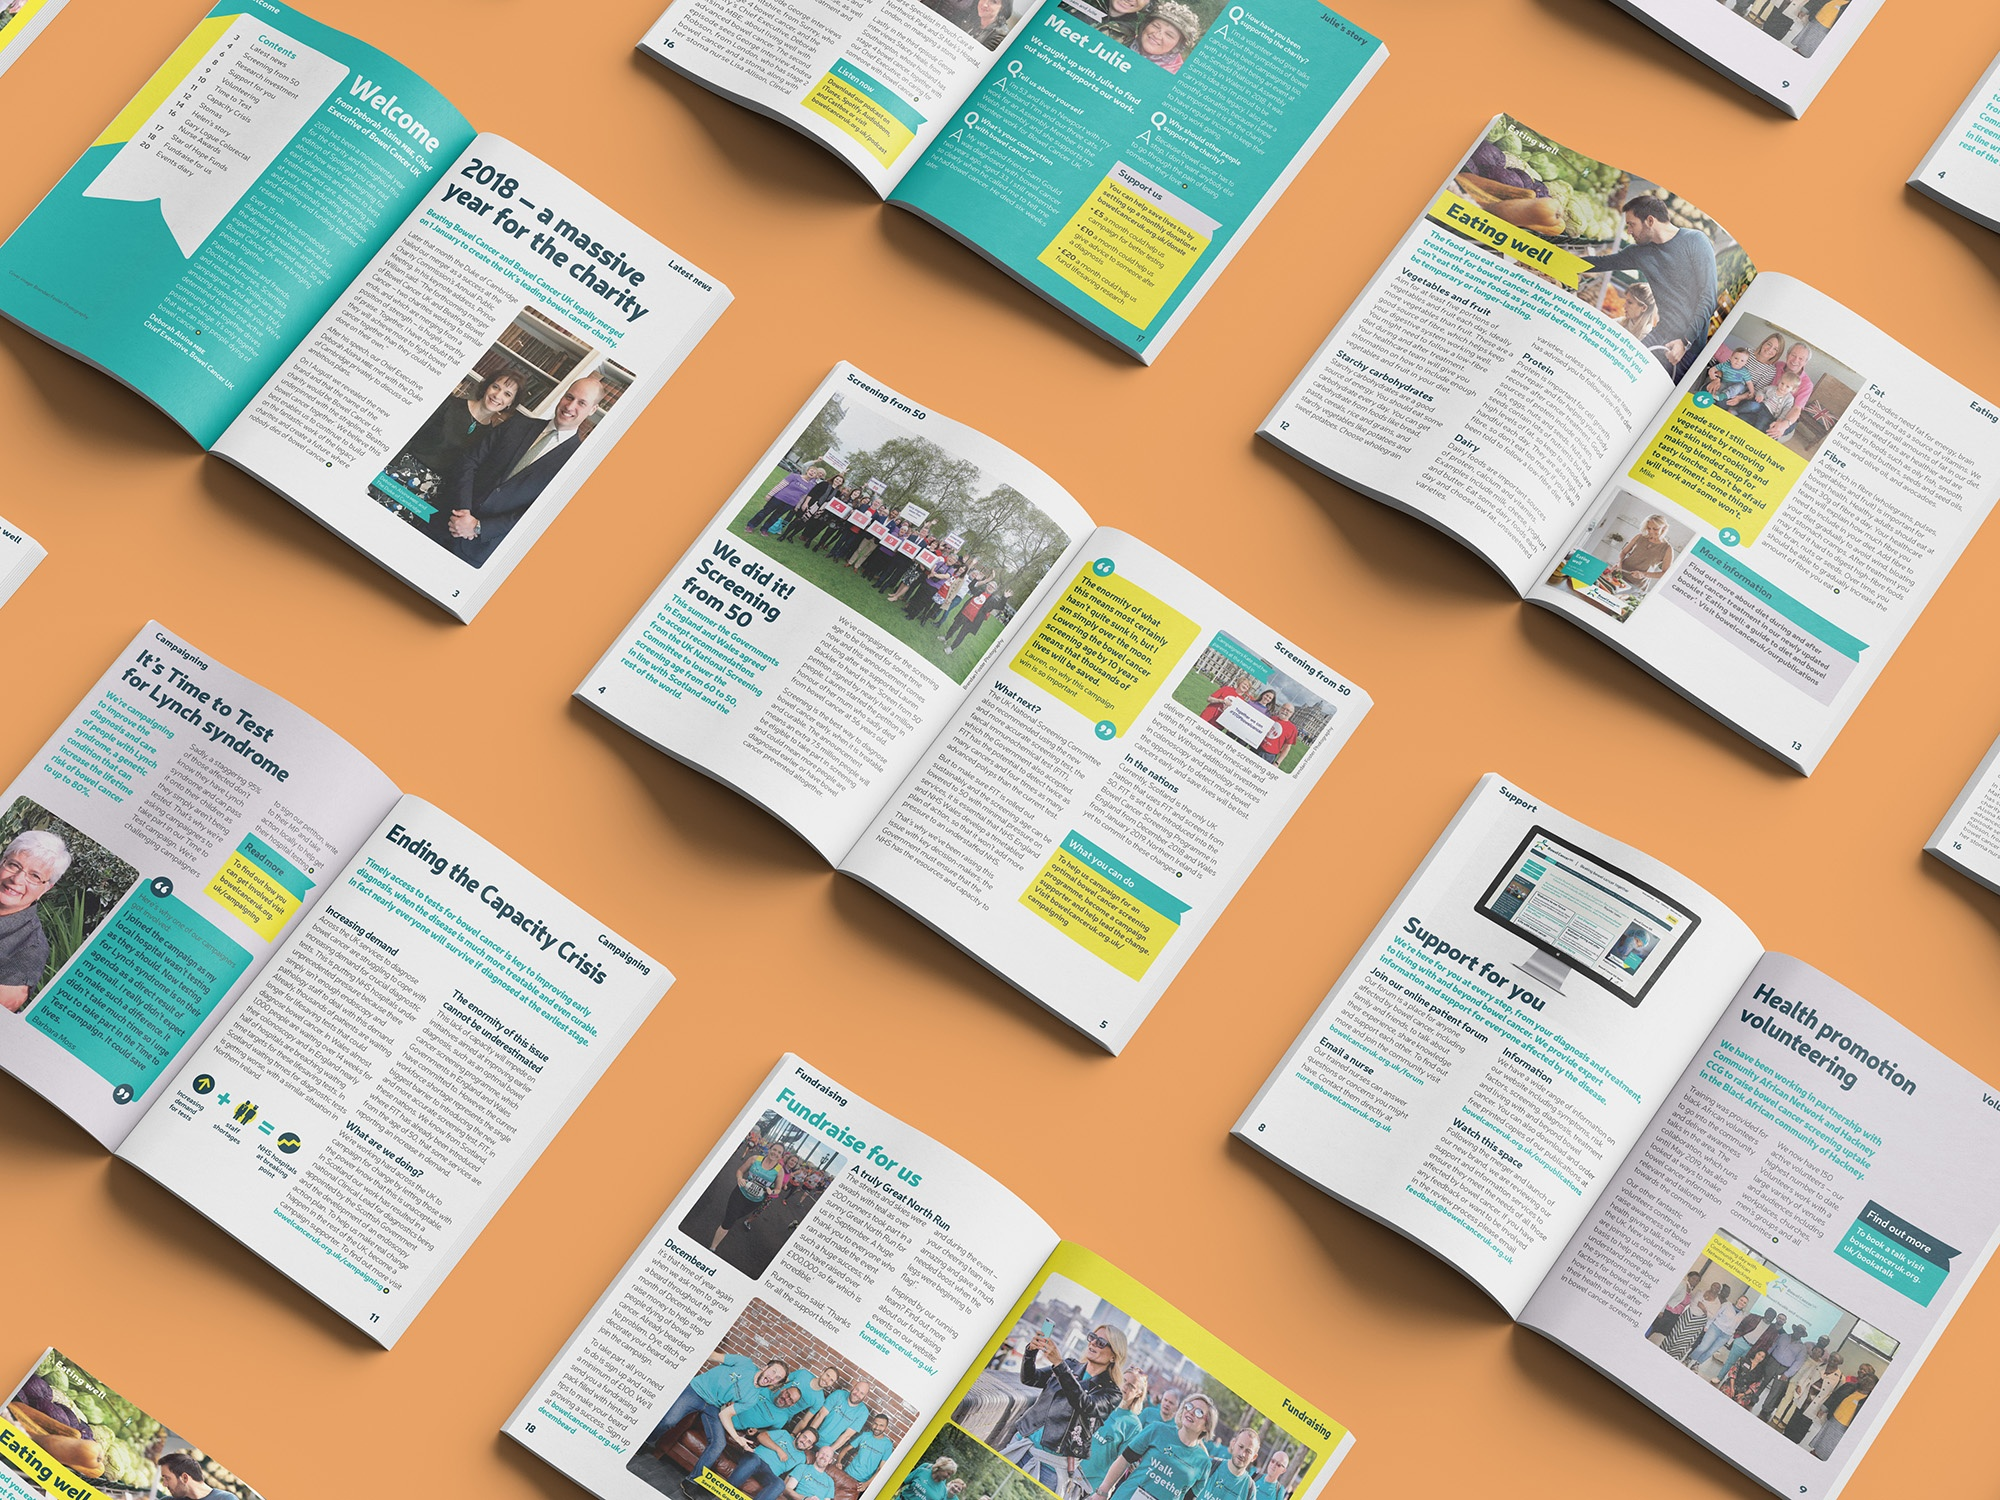 An image showing lots of spreads from the magazine